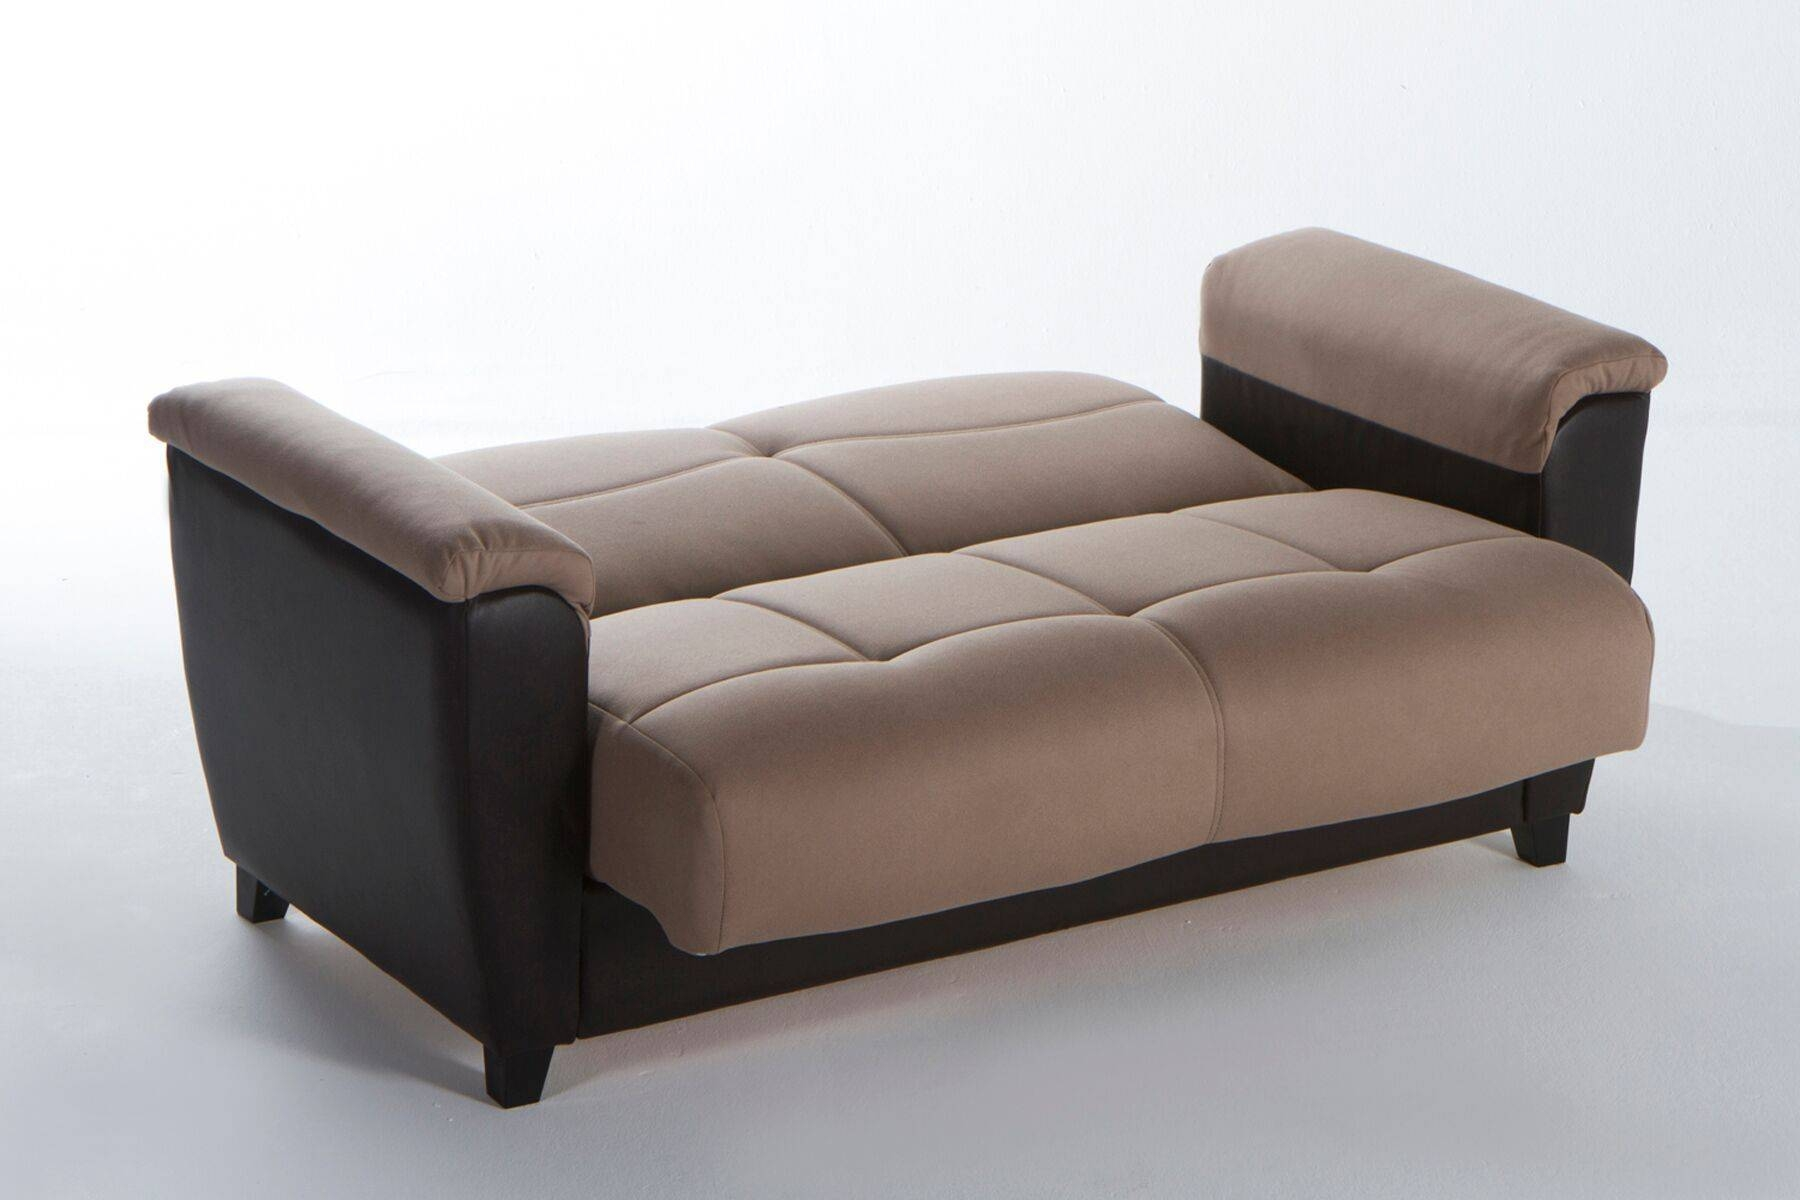 Aspen Milano Vizon Sofa Su-Aspen Sunset Furniture Fabric Sofas At with Aspen Leather Sofas (Image 12 of 30)